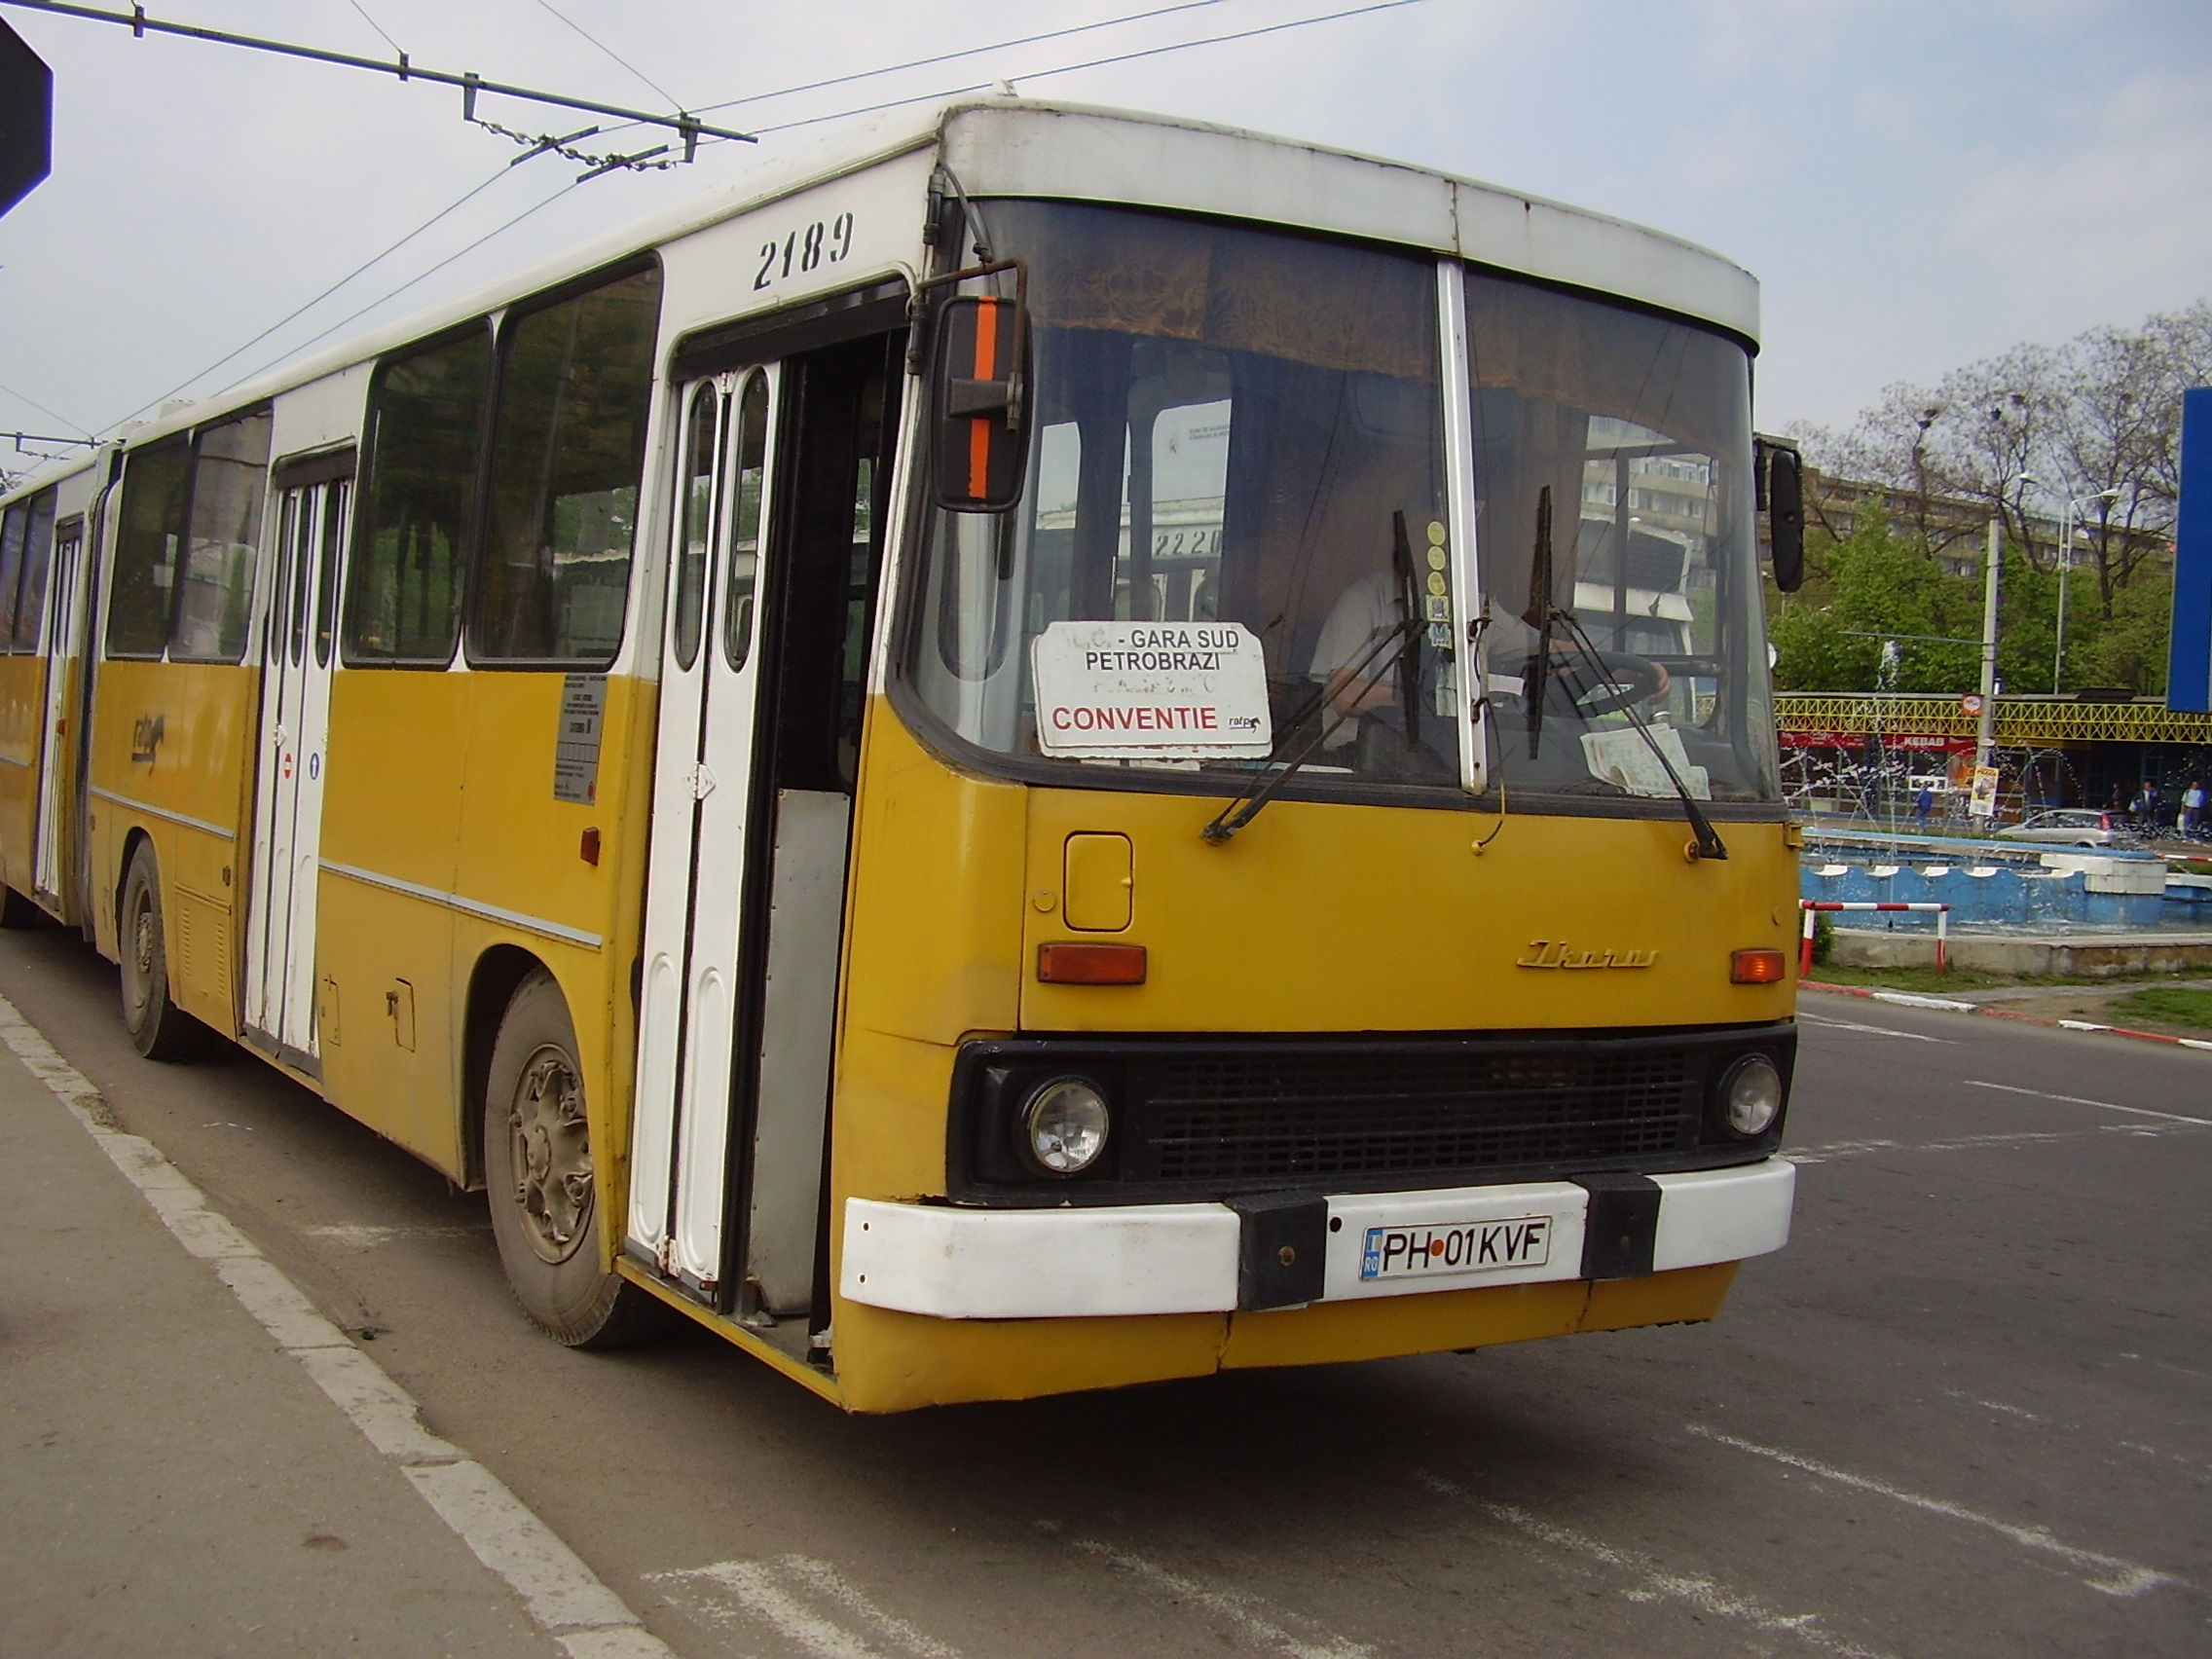 2189. Bus Ikarus on line 0. April 25, 2006